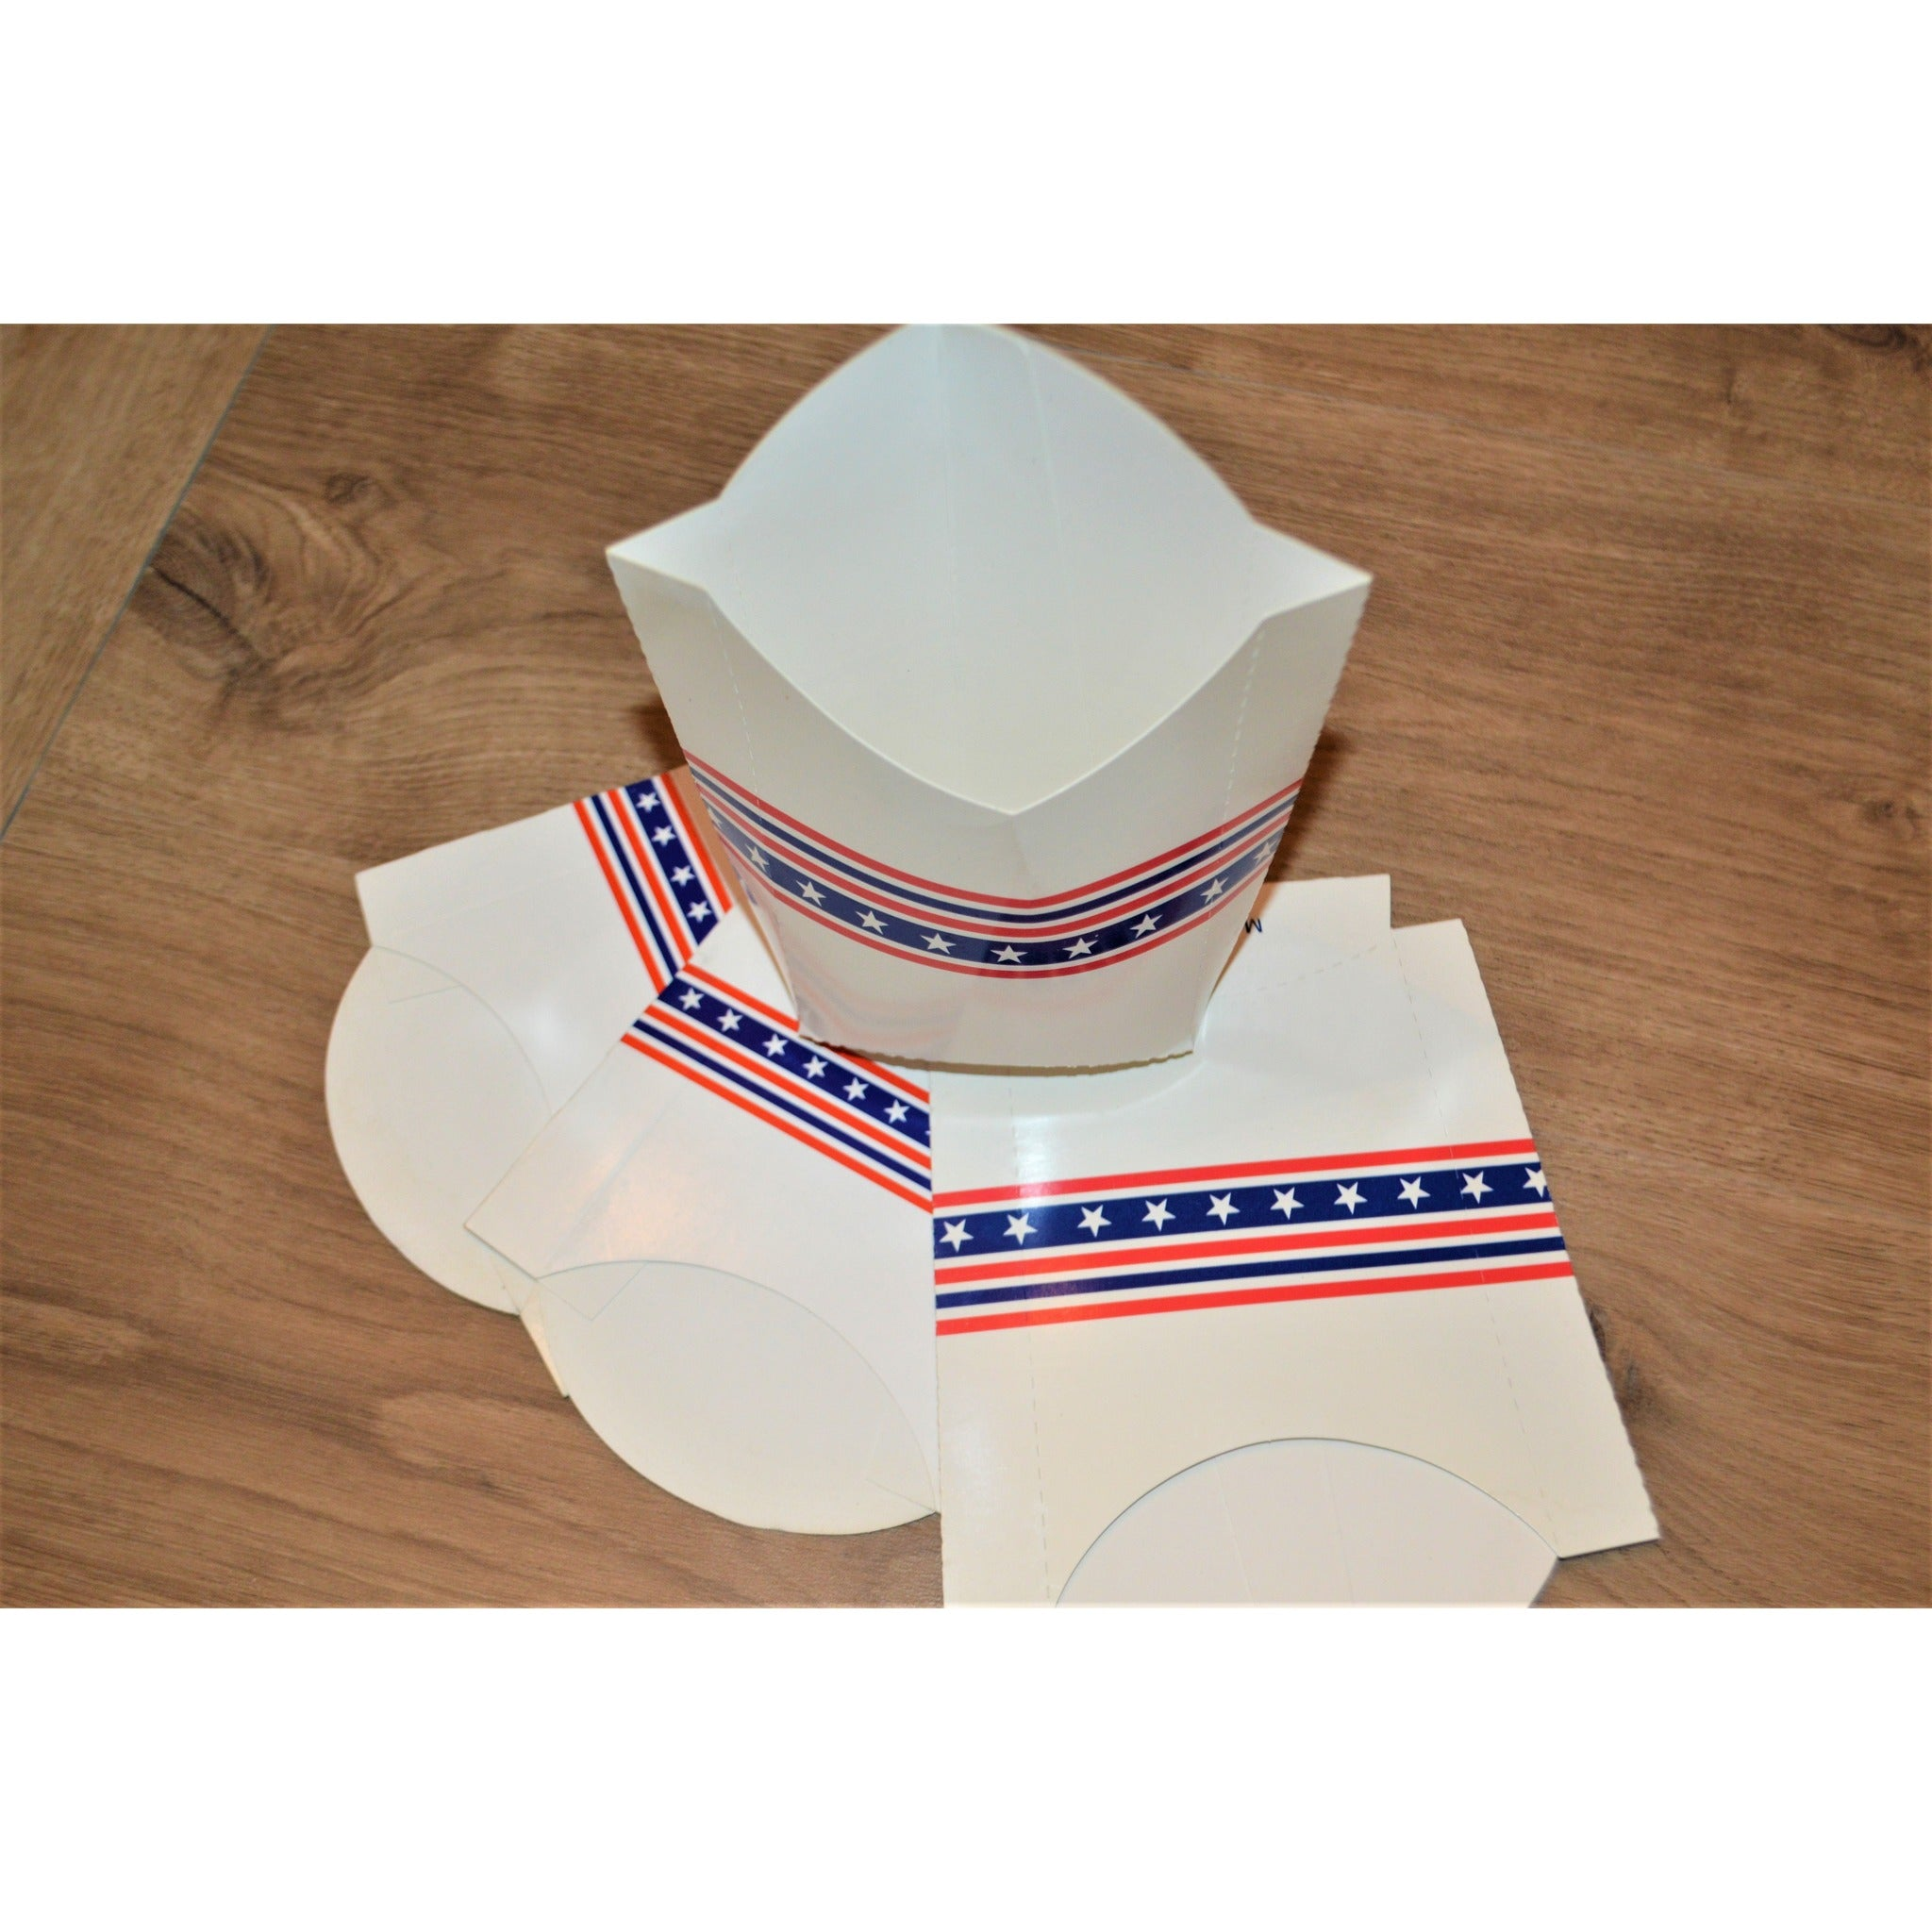 Star-Spangled Fried Food Containers